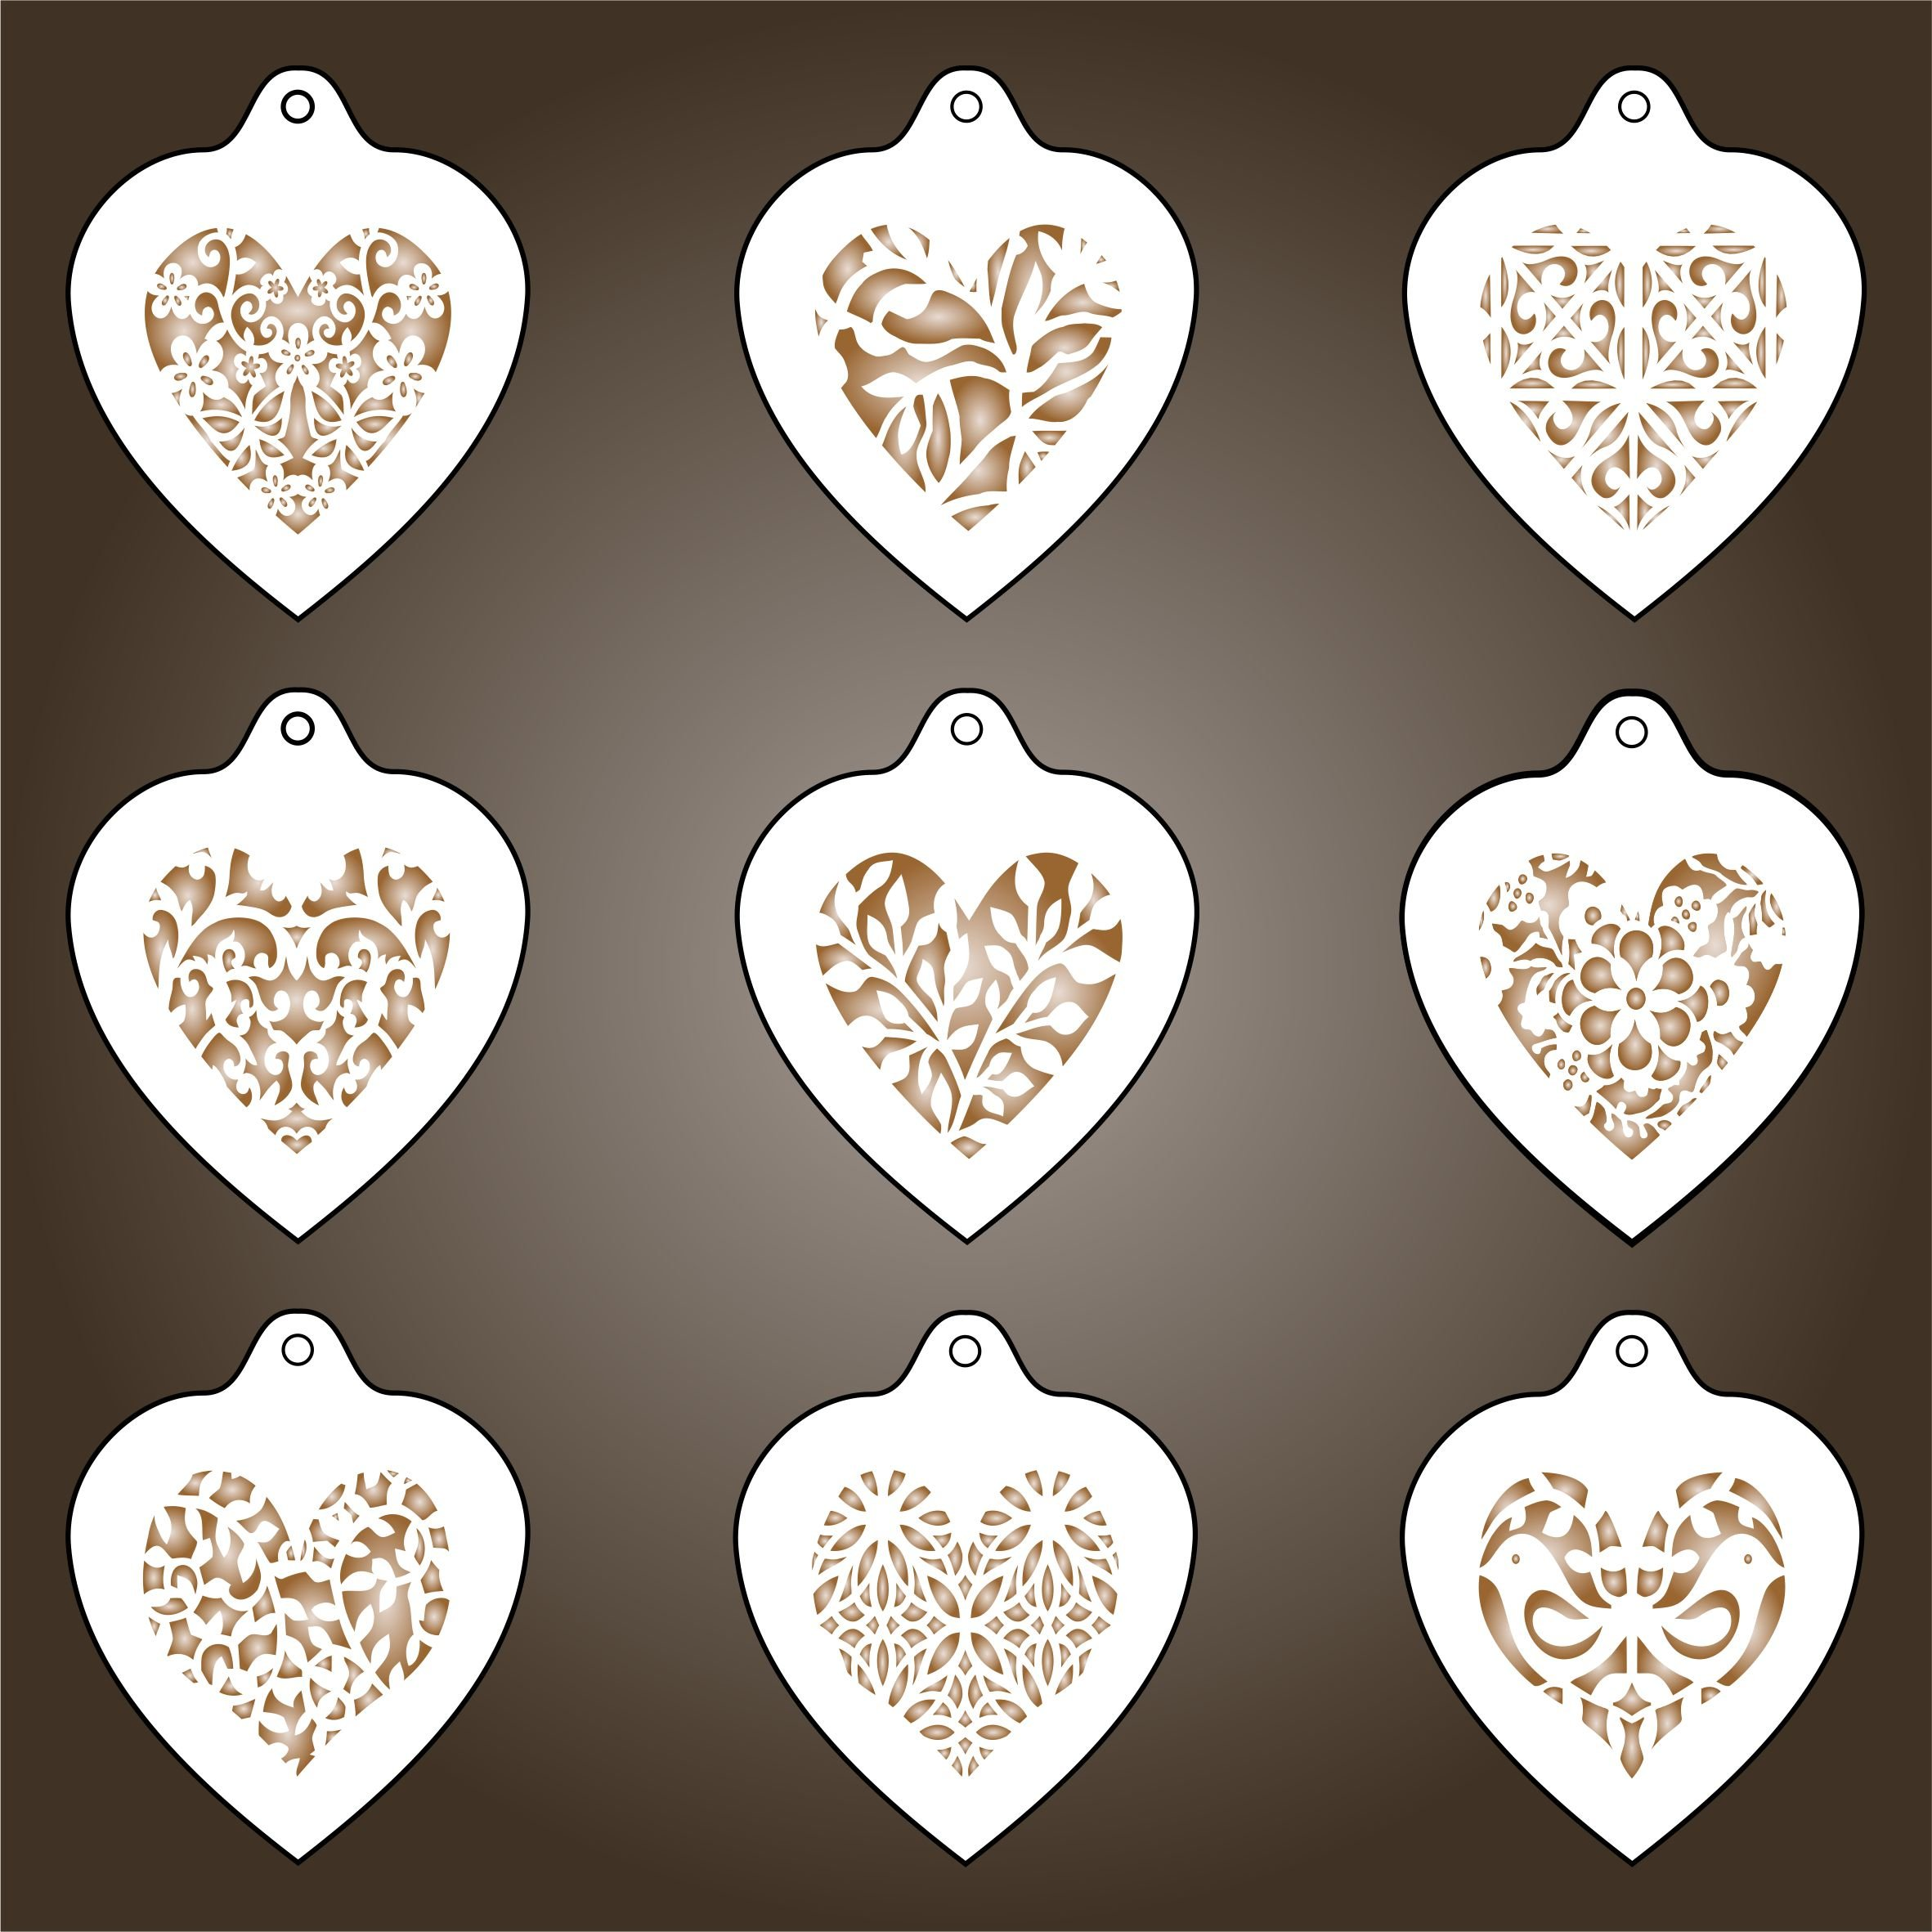 Heart Coffee Set Stencil - 9 Designs - Reusable Barista Stencils for Decorating Cappuccino Coffee Latte Cupcakes Cakes Cookies Scrapbooking Stenciling and more... by Stencils for Walls (Image #1)